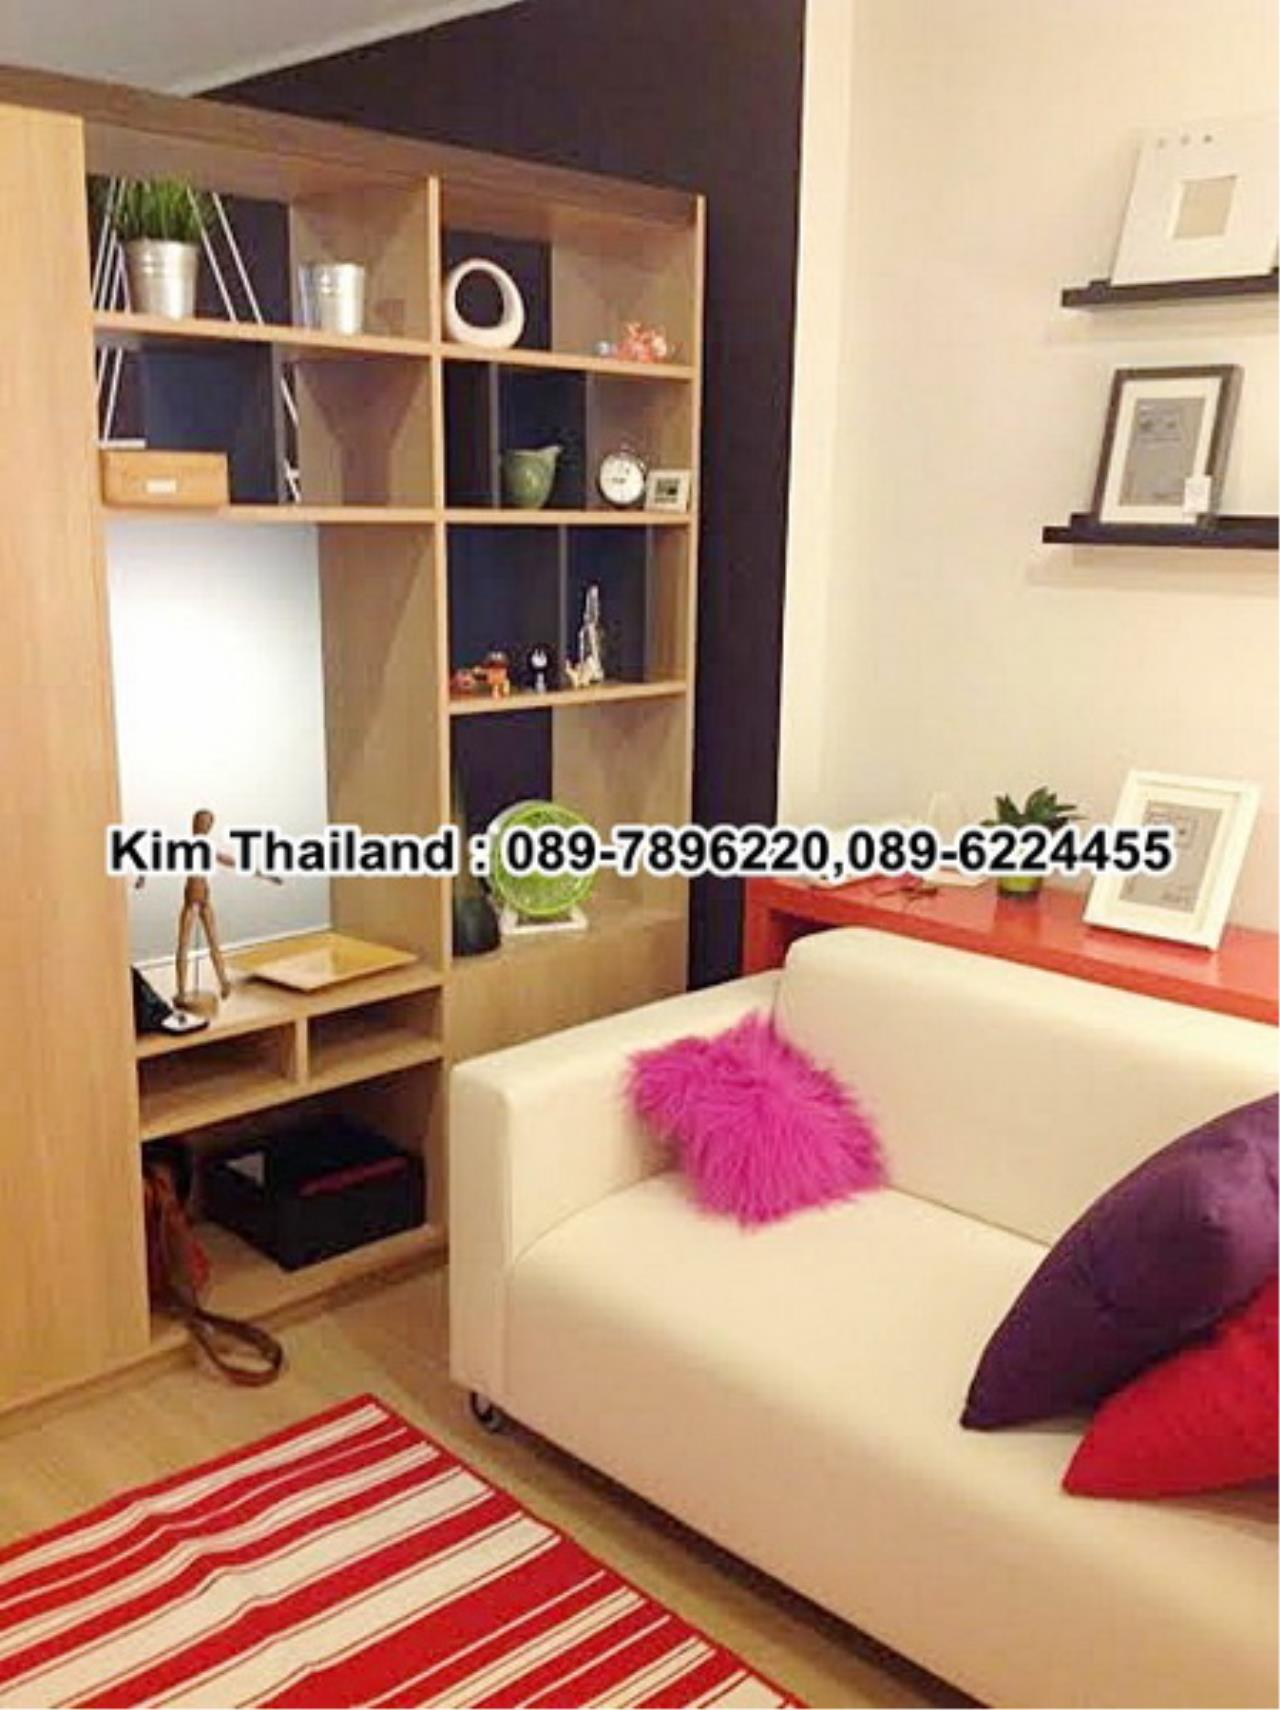 BKKcondorental Agency's For rent, Condo U Delight @ Bang Sue Station., Area 27 sq.m. 1 bedroom.Rental price 8000 THB per month. 6